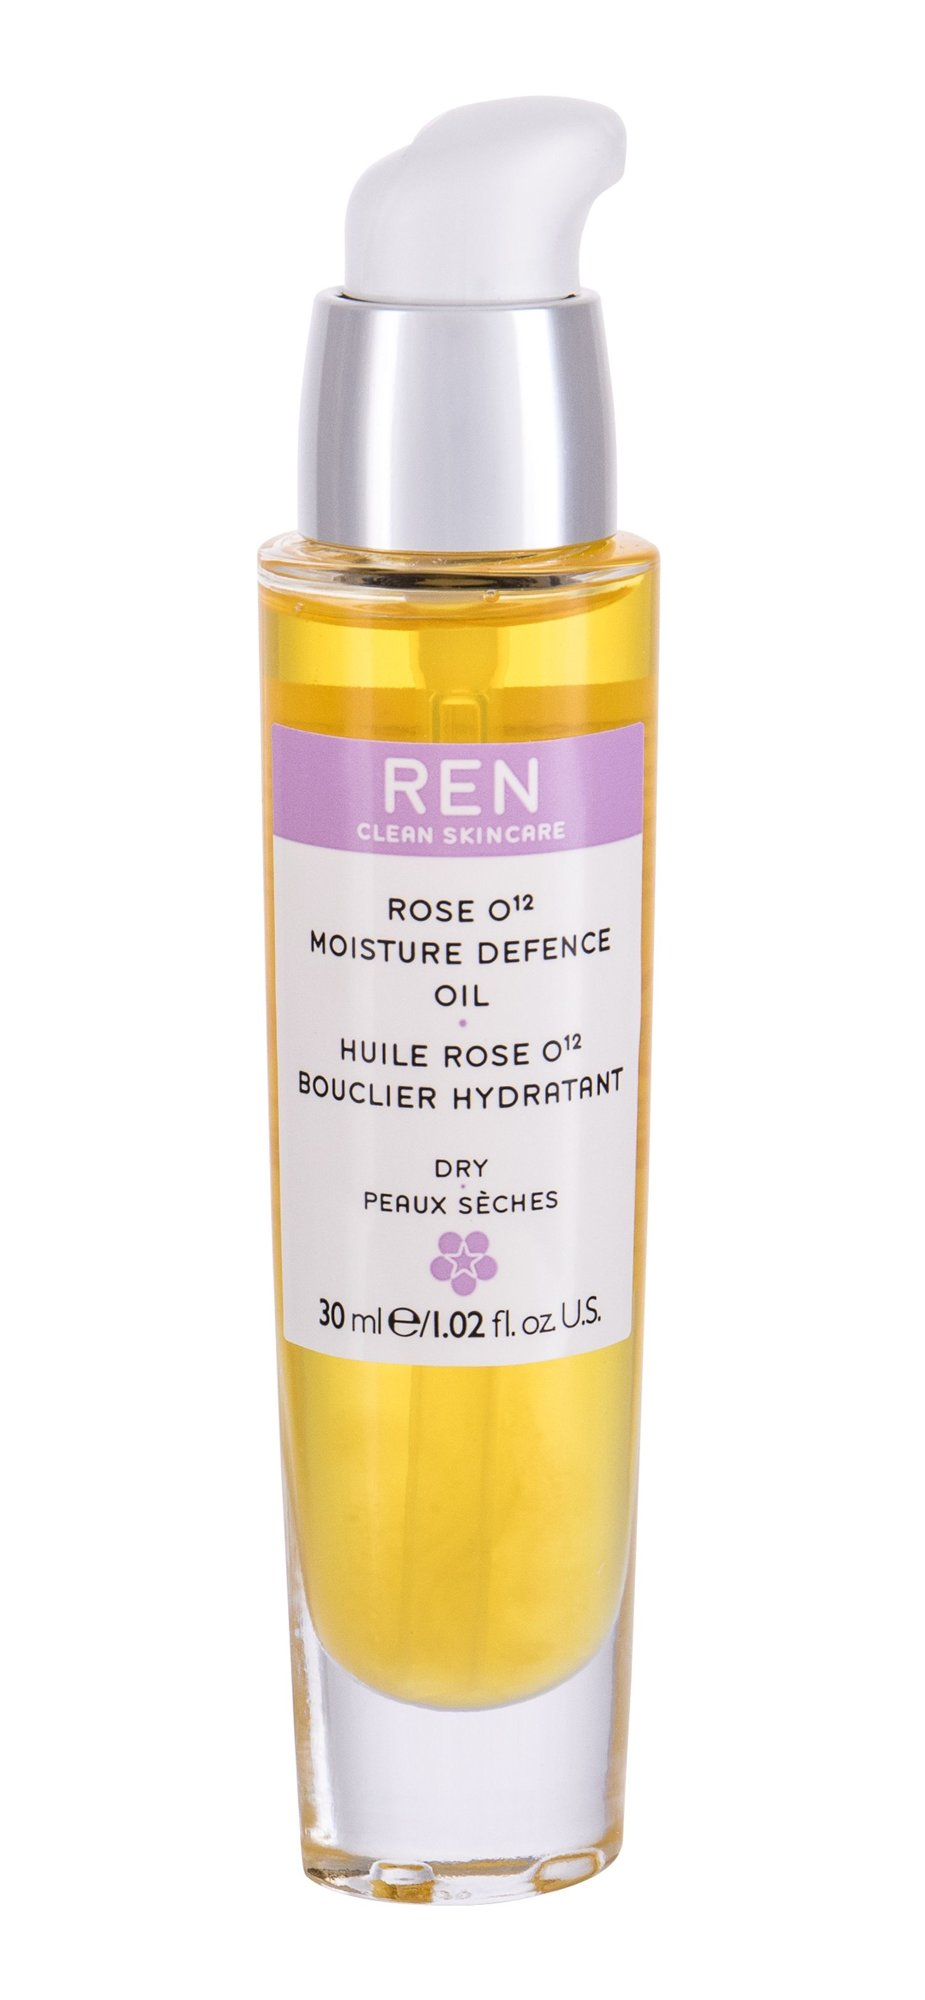 Ren Clean Skincare Rose O12  Pleťové sérum, W, 30 ml